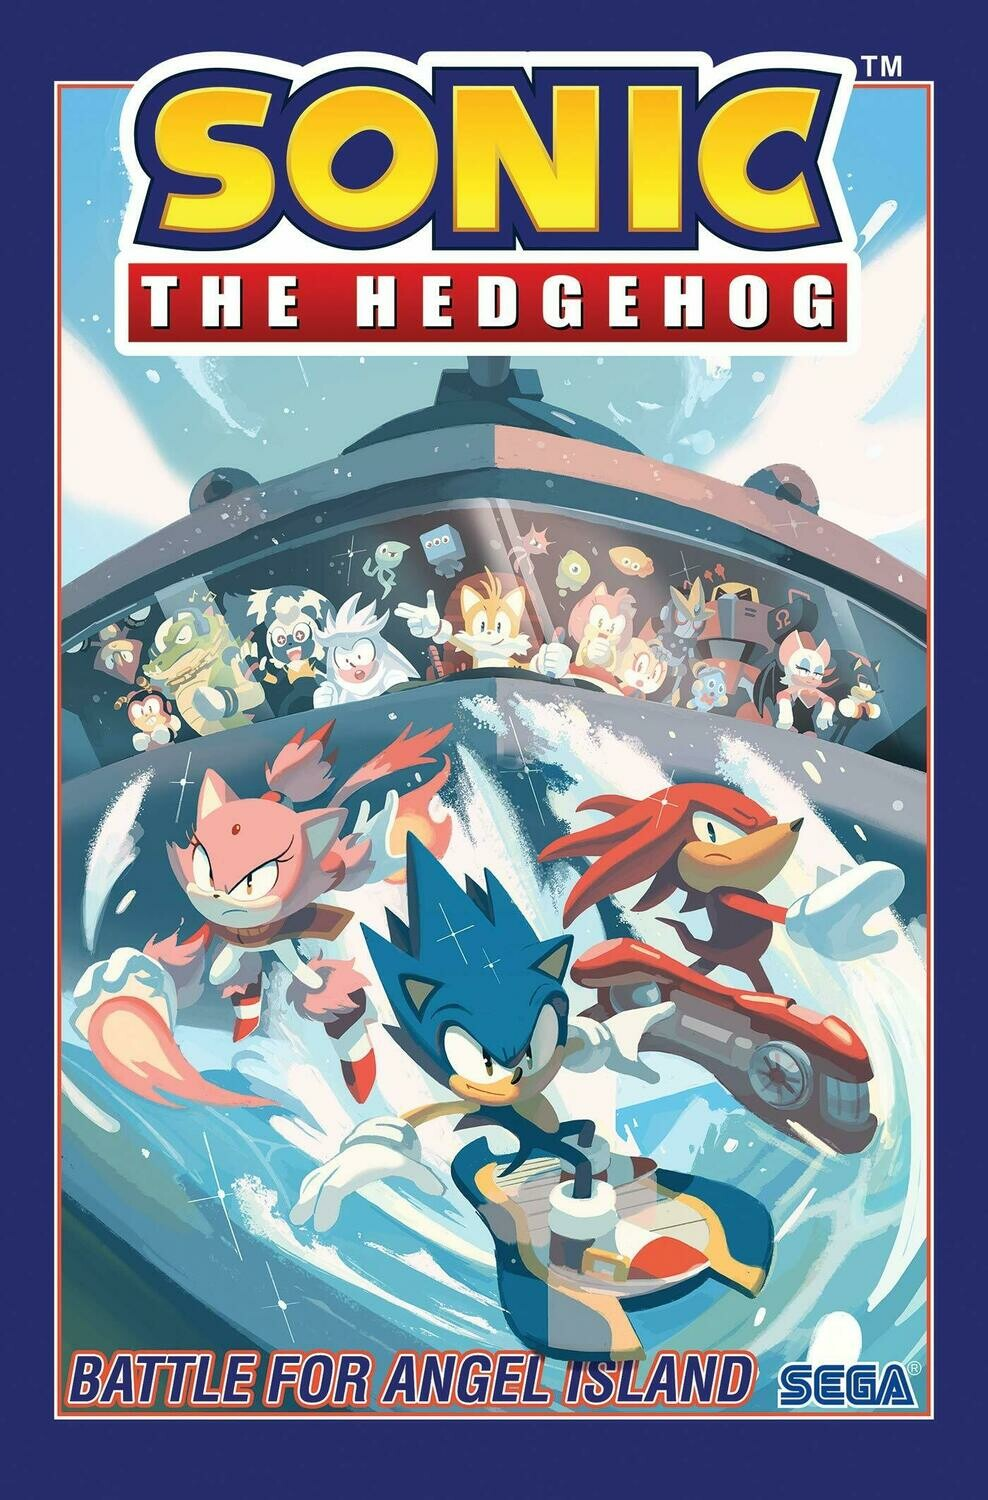 Sonic The Hedgehog: Battle For Angel Island